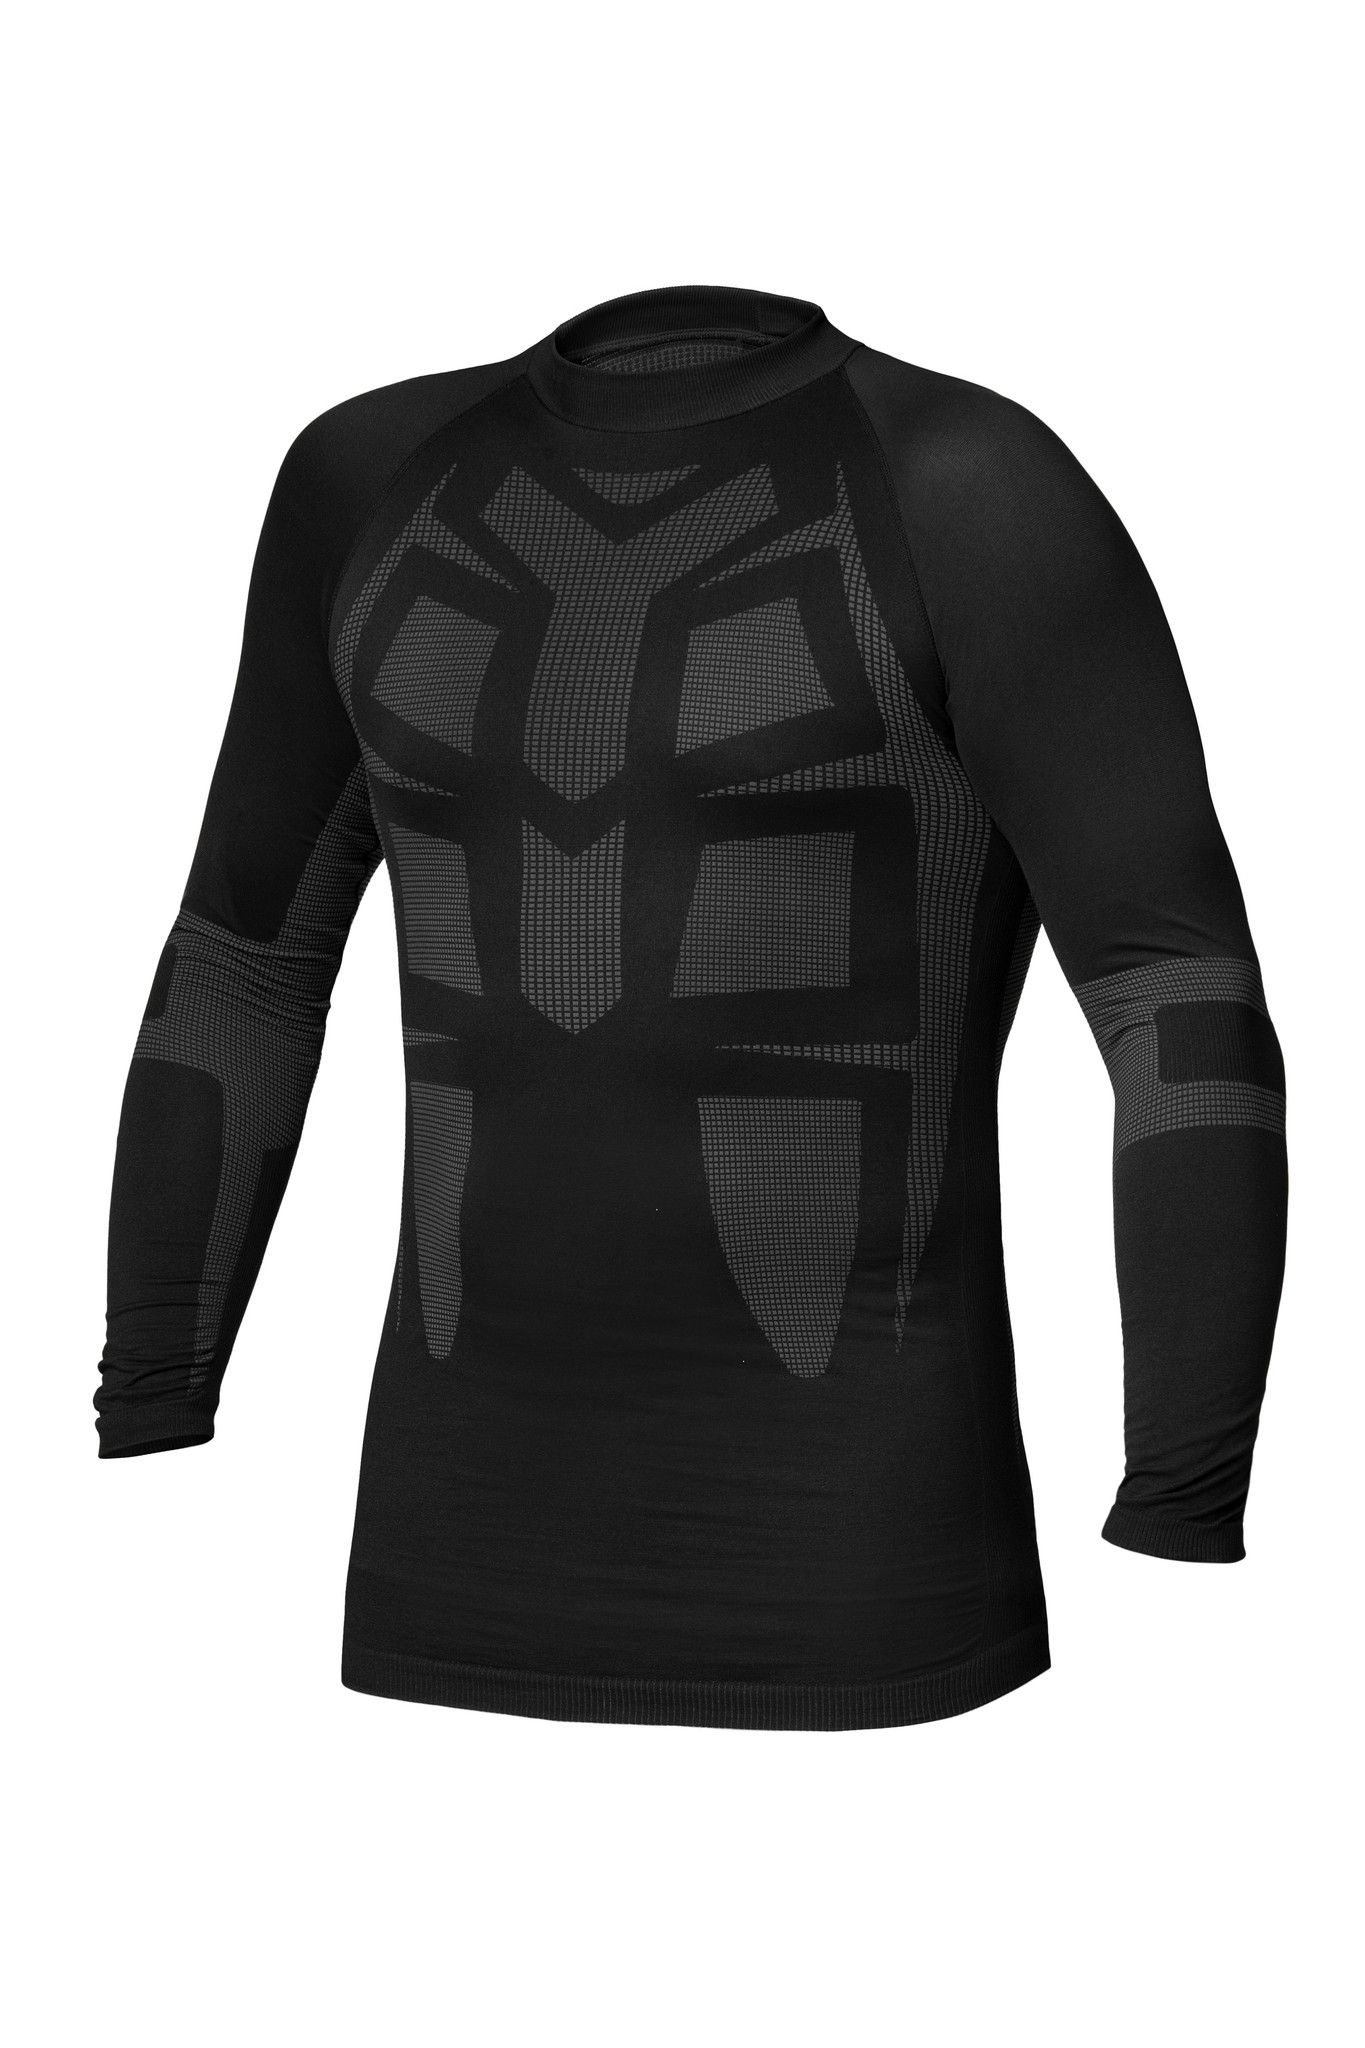 ADONIS Motorcycle Base Layer Long Sleeved Shirt - Function Wear - iXS | Motorcycles & Gear